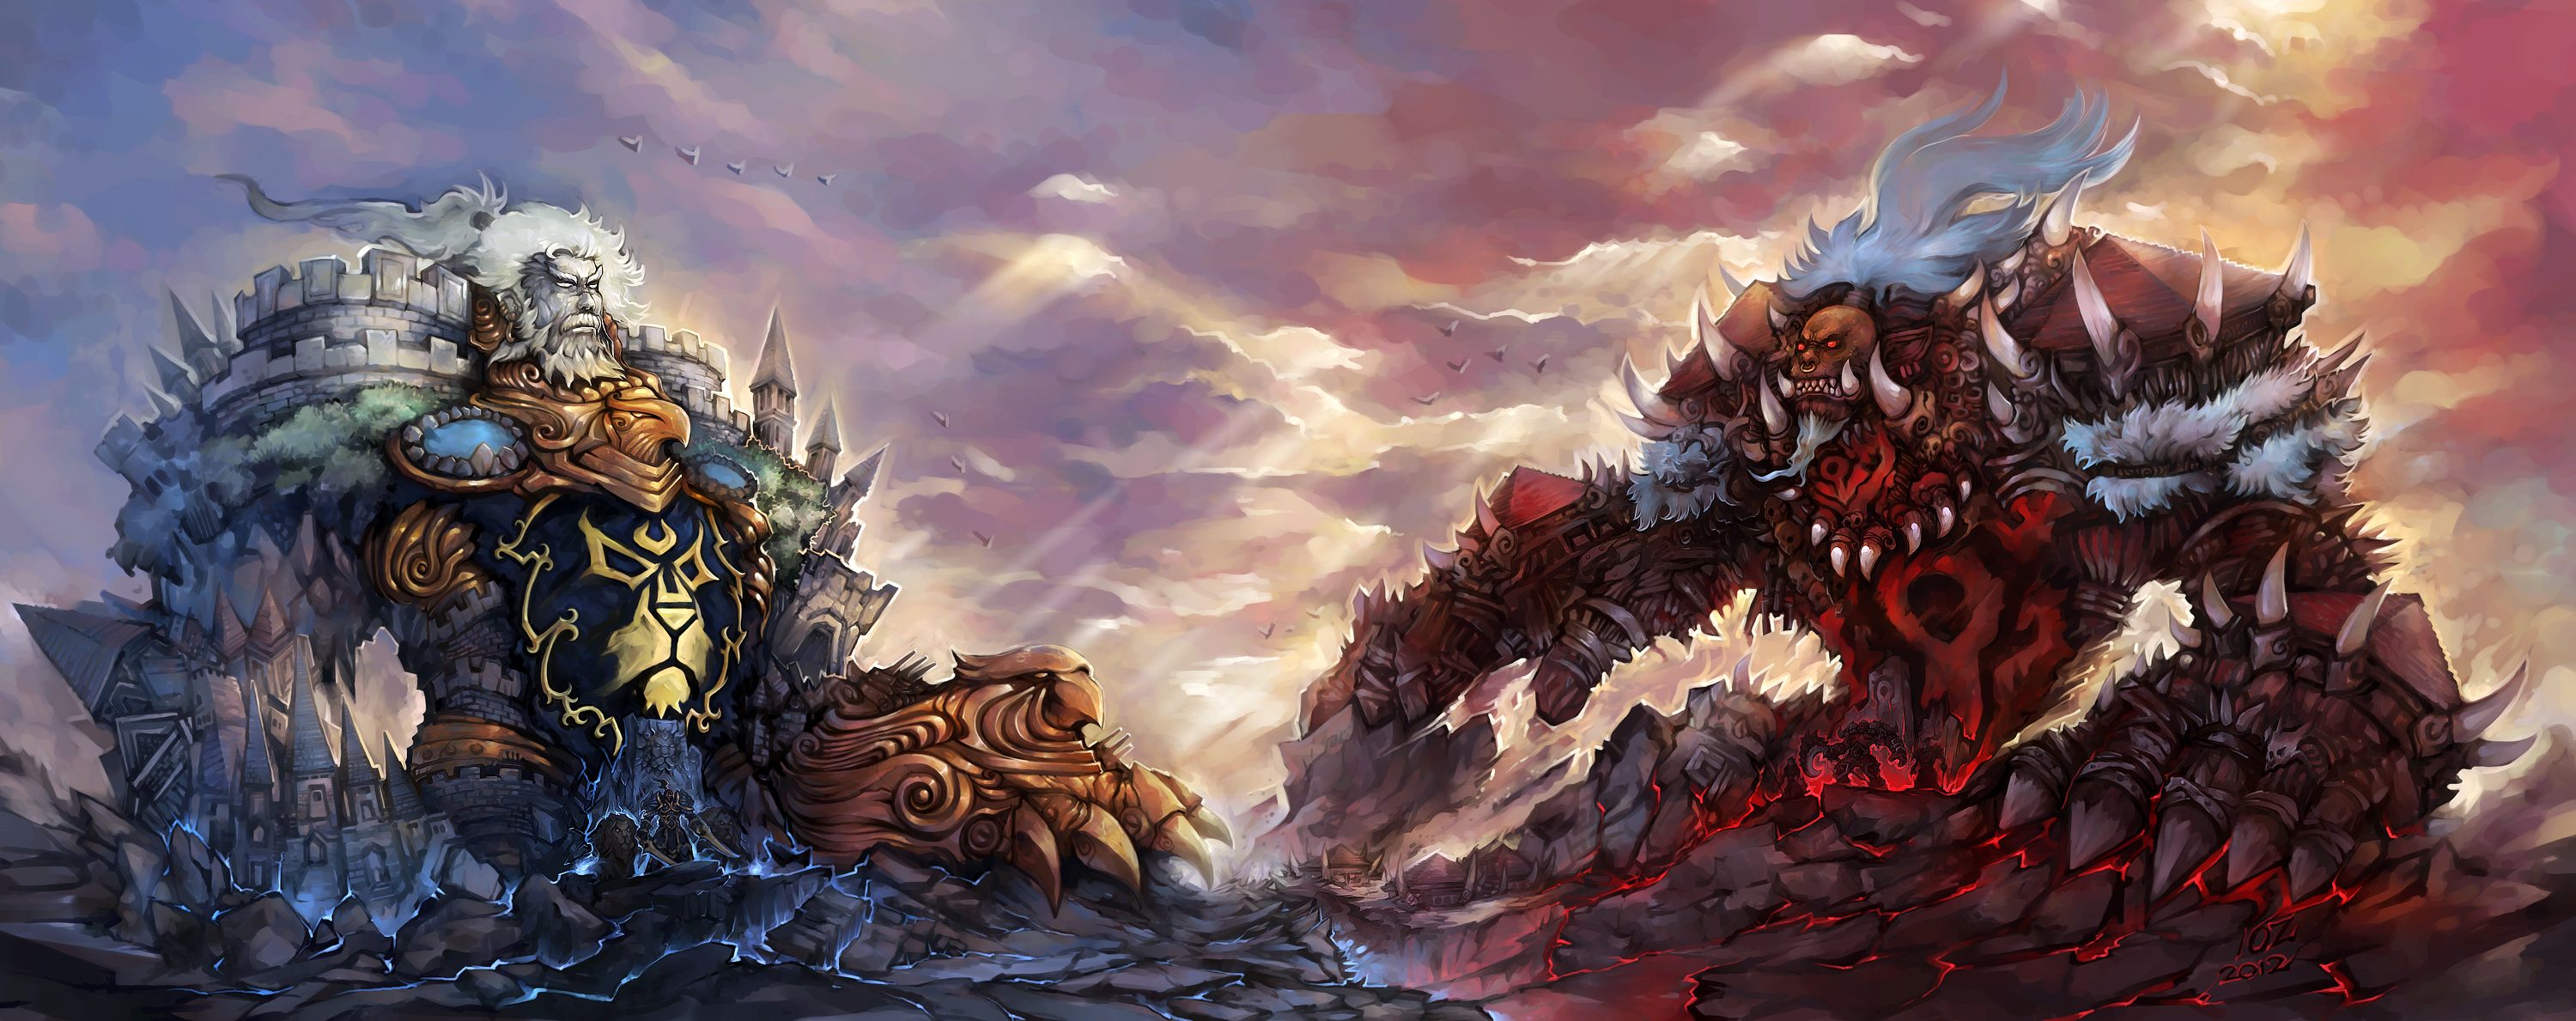 World of warcraft wallpapers pictures images - World of warcraft images ...